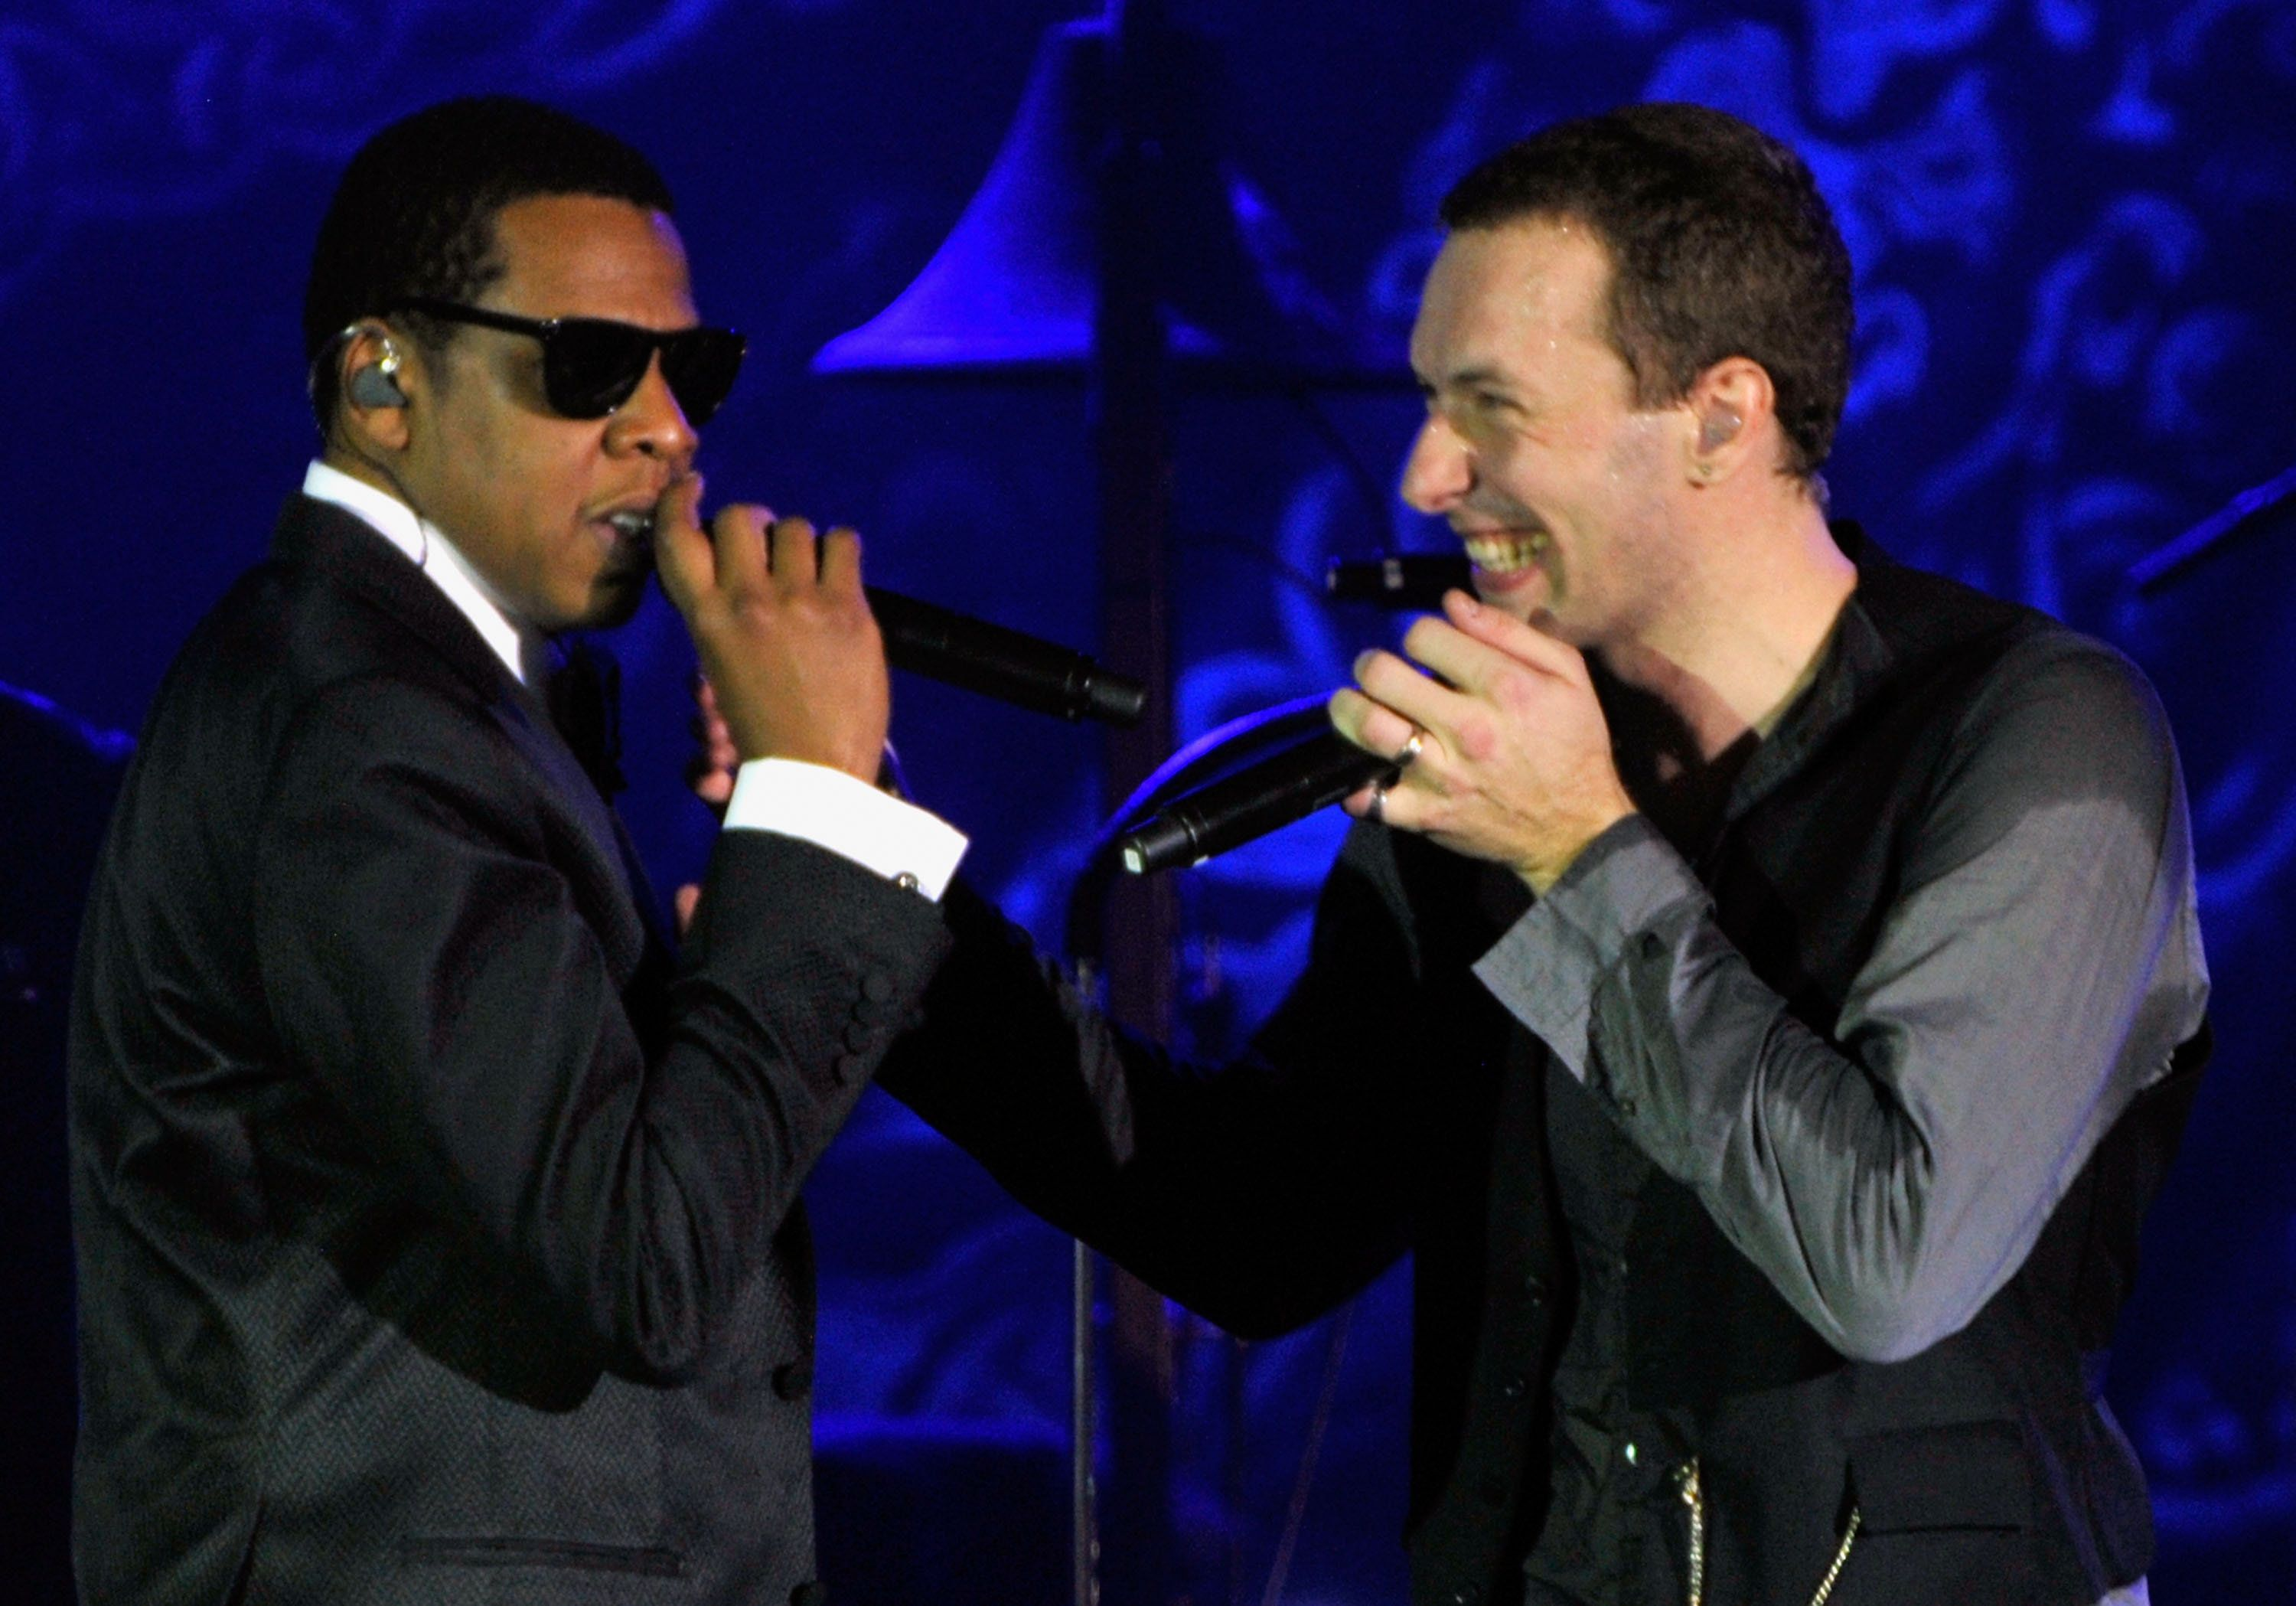 Rapper Jay-Z (L) performs onstage with musician Chris Martin (R) of the band Coldplay at The Cosmopolitan Grand Opening and New Year's Eve Celebration with Jay-Z and Coldplay at Marquee Nightclub in The Cosmopolitan on December 31, 2010 in Las Vegas, Nevada.